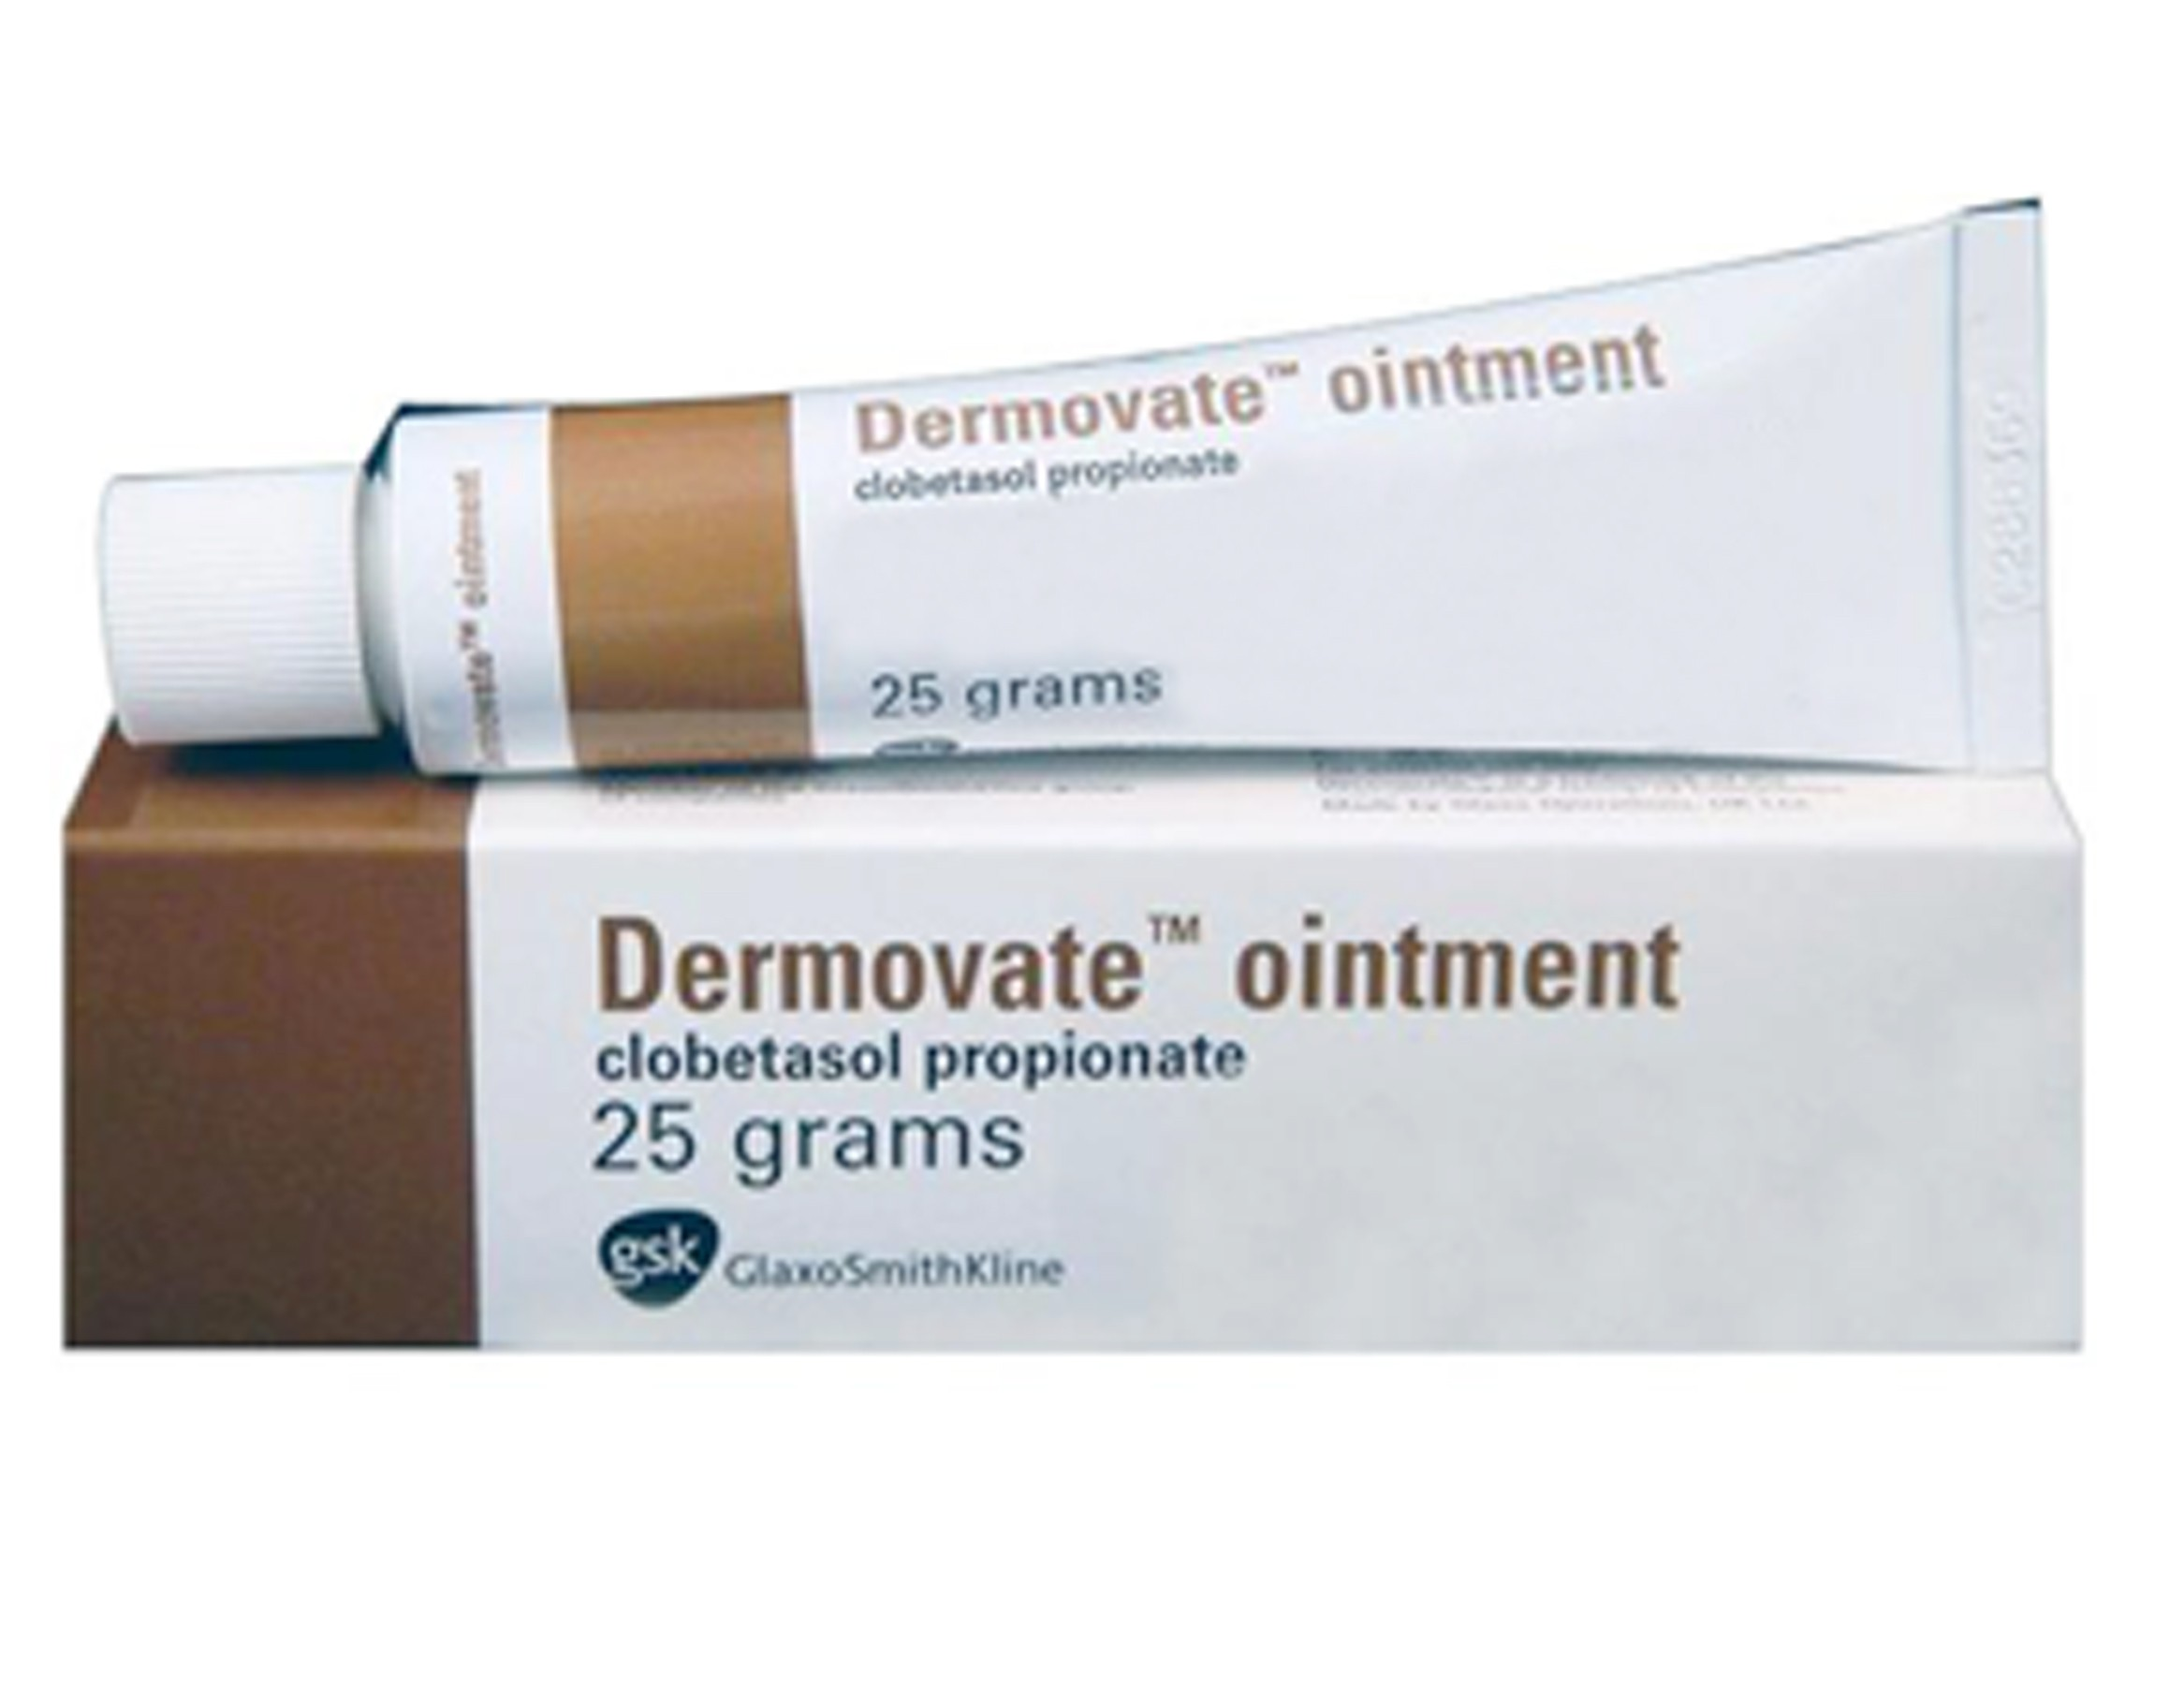 dermovate cream glaxo